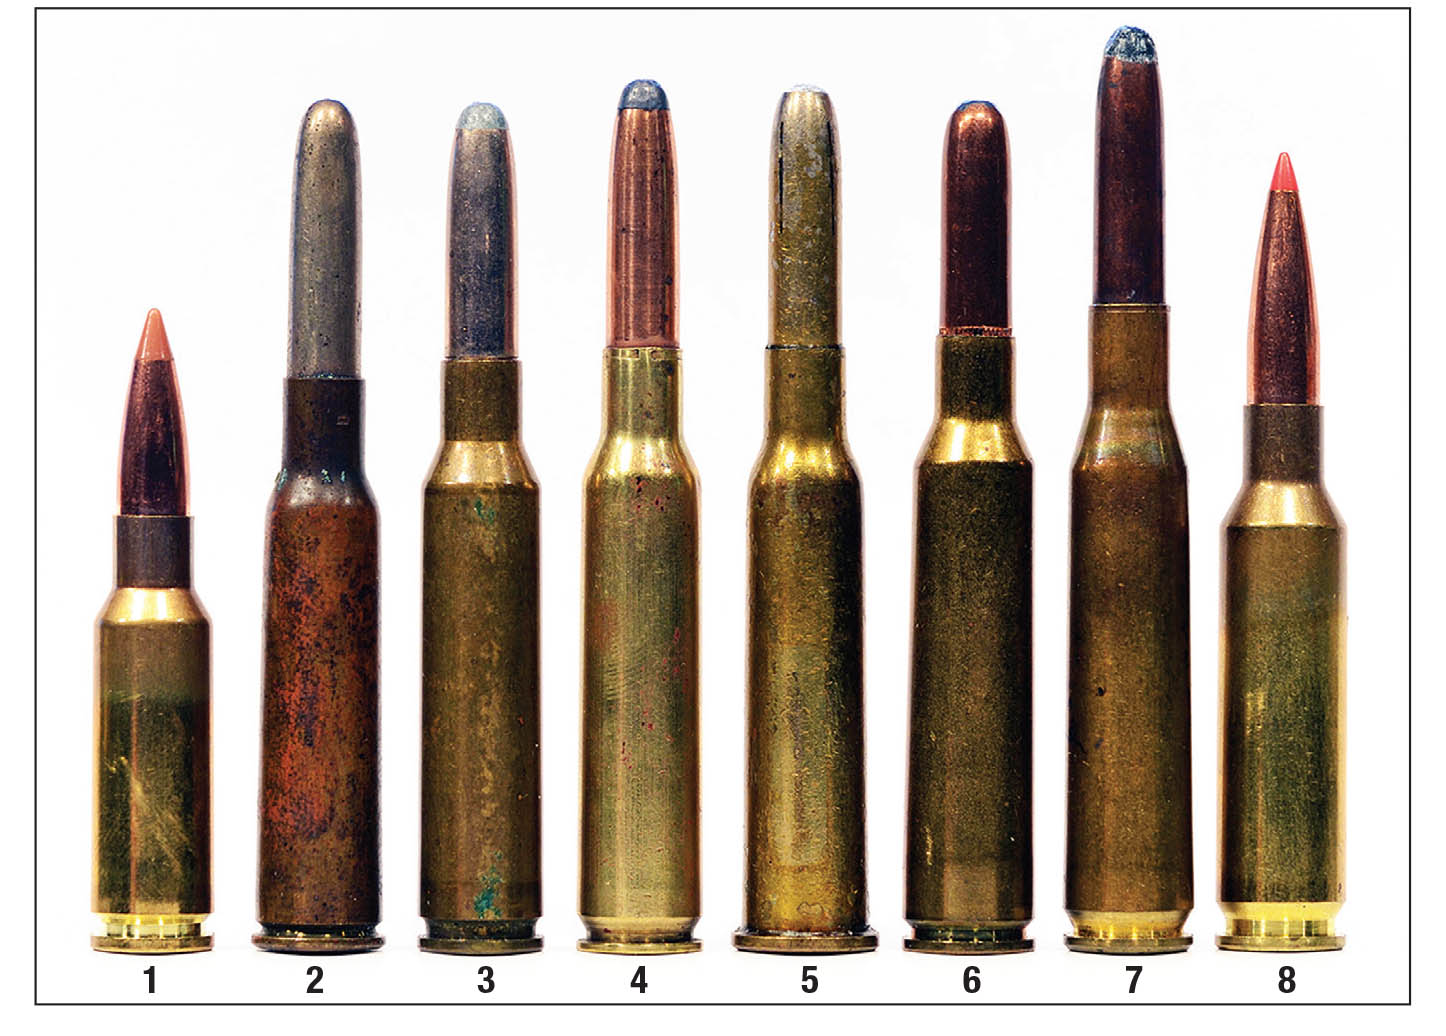 The 6.5mm lineup: (1) 6.5 Grendel, (2) 6.5 Arisaka, (3) 6.5 Carcano, (4) 6.5x54 Mannlicher-Schönauer, (5) 6.5 Dutch, (6) 6.5x55 Swedish, (7) 6.5x58 Mauser, (8) 6.5 Creedmoor. For 120 years, 6.5mm (.26) cartridges have blazed a vivid trail in both military and sporting use.